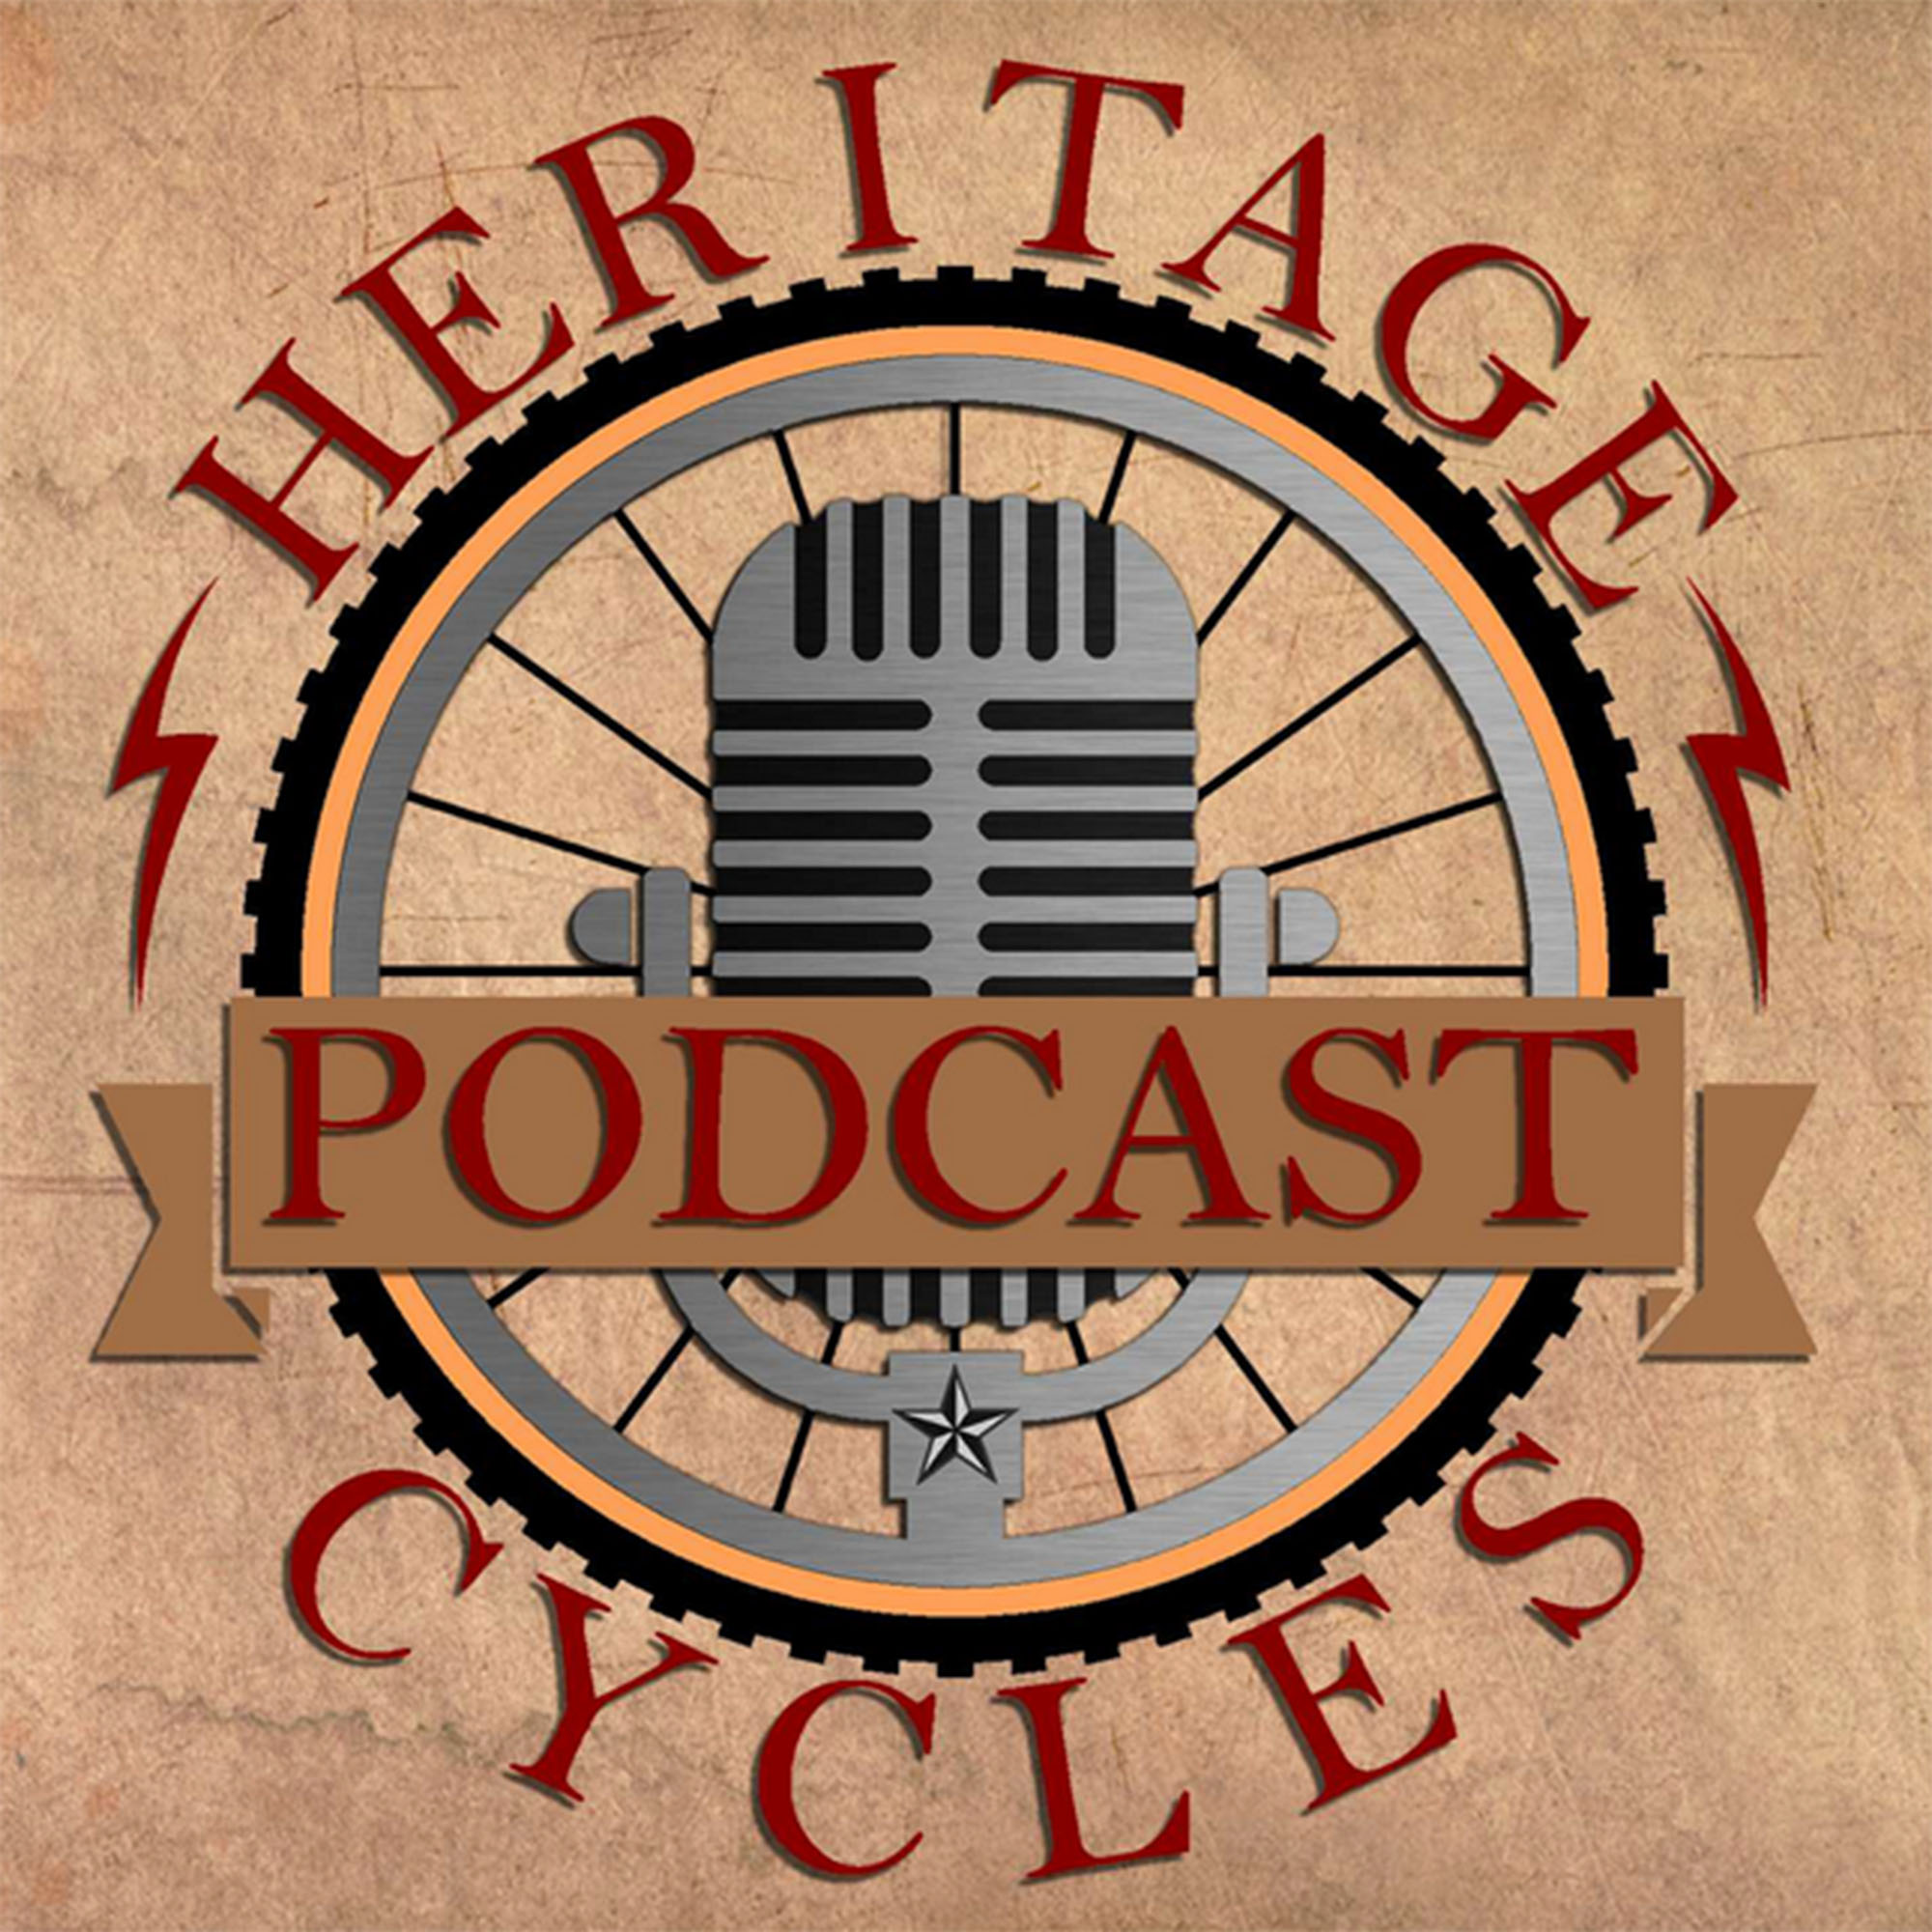 Heritage Cycles Podcast Episode 7: Riding With Kids